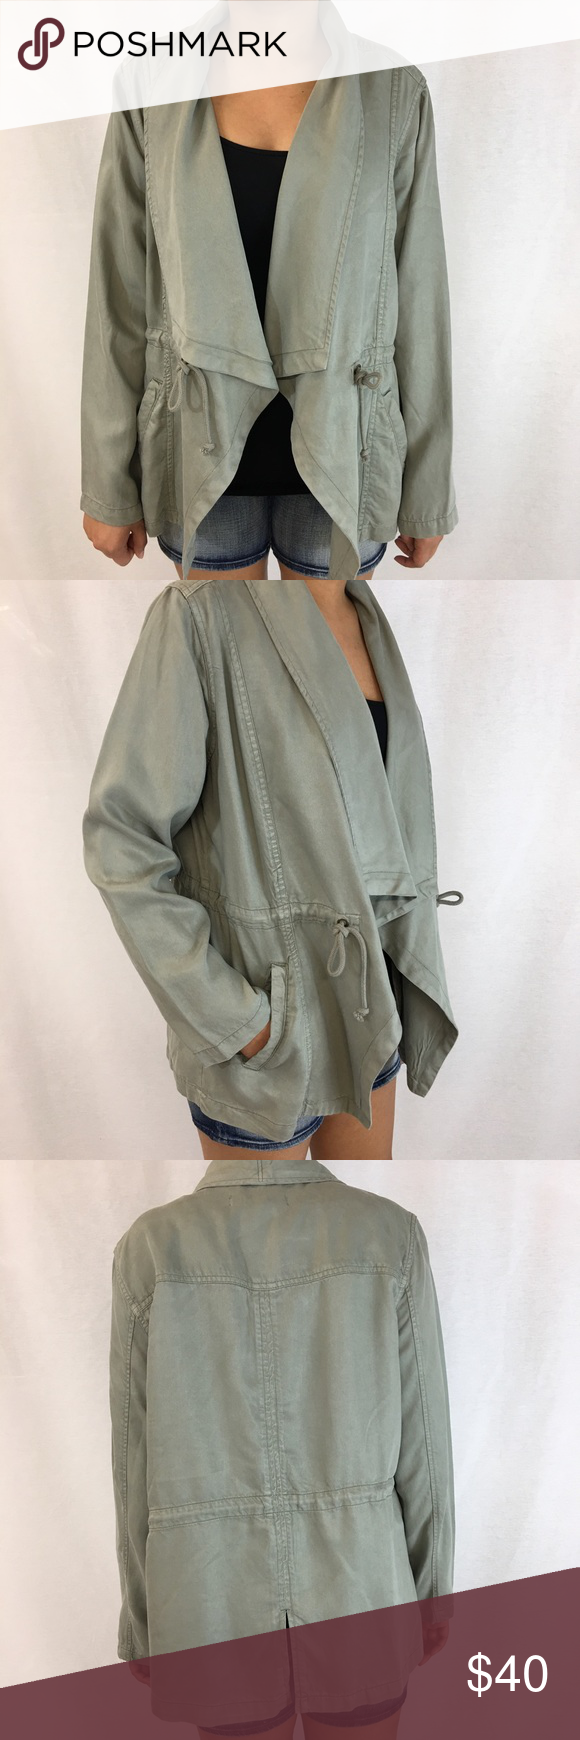 Silver sage drawstring waist jacket Washed olive color jacket with drawstring waist & pockets. Back bottom hem with slit. Wide lapel collar is sewn down. Light weight canvas material. Size Large. NEW WITH TAGS. Easy to dress up or down. max jeans Jackets & Coats